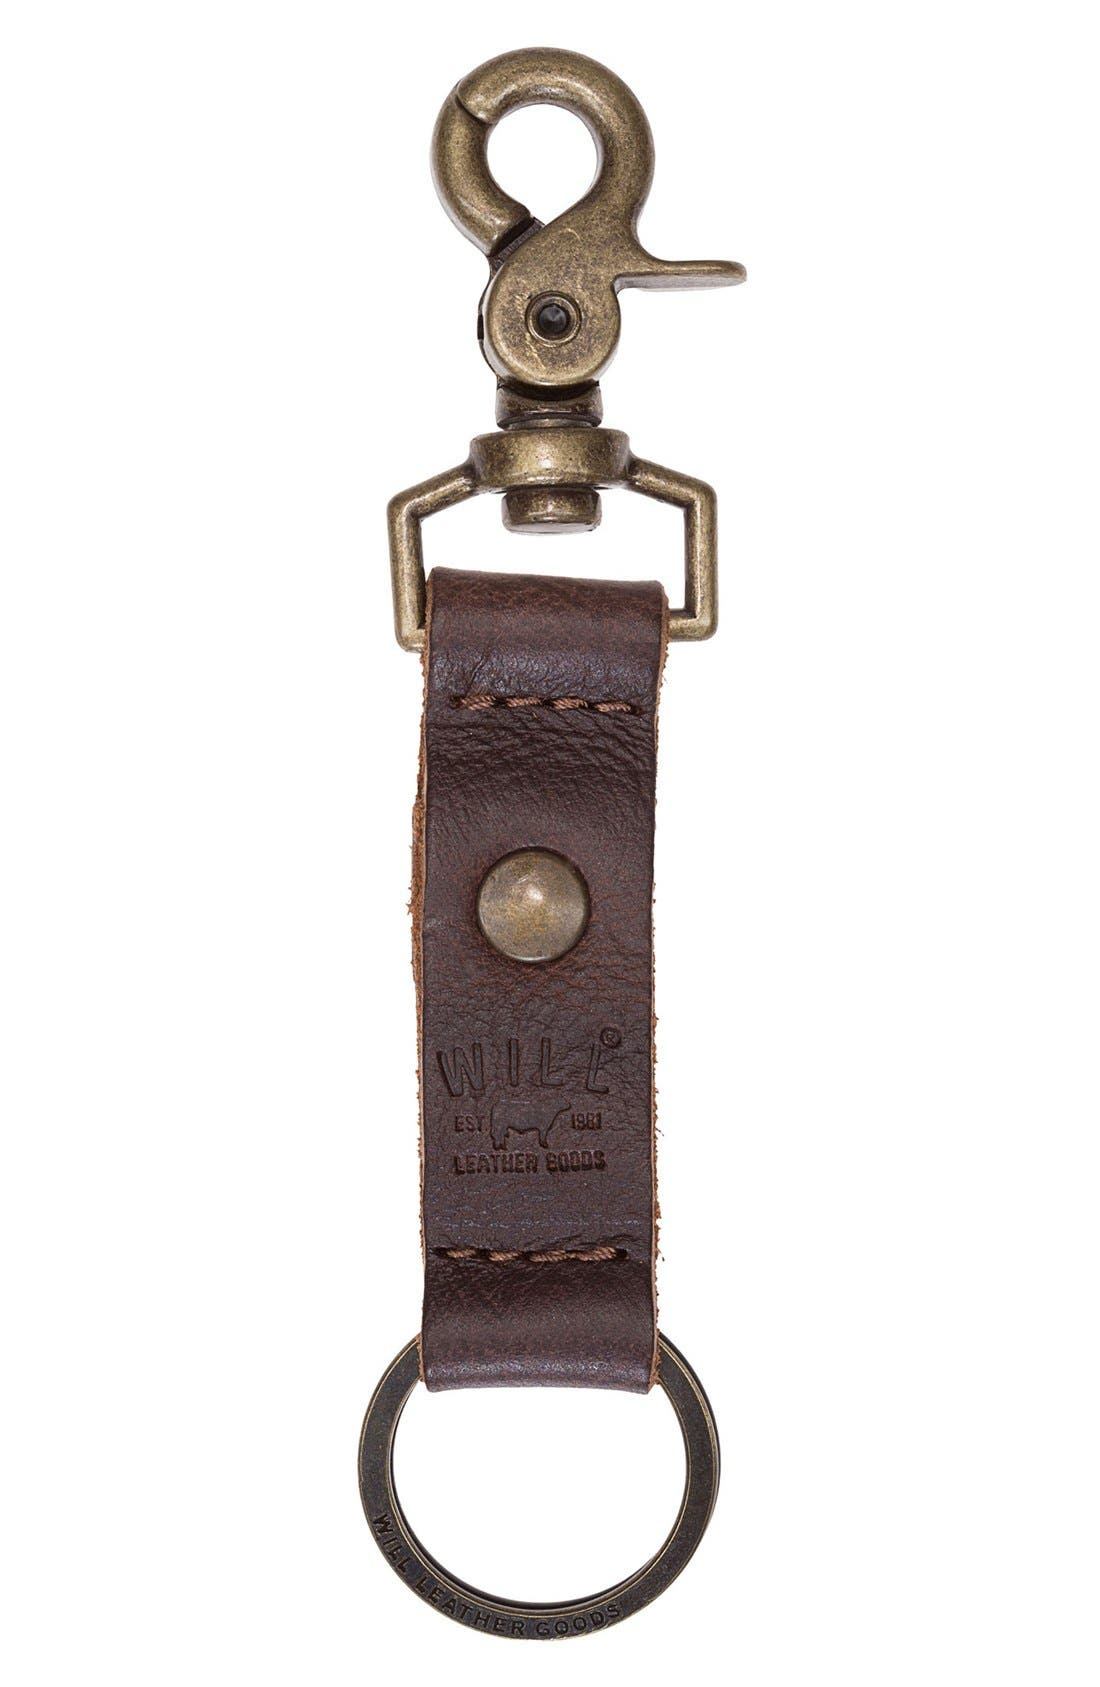 WILL LEATHER GOODS Wren Key Chain